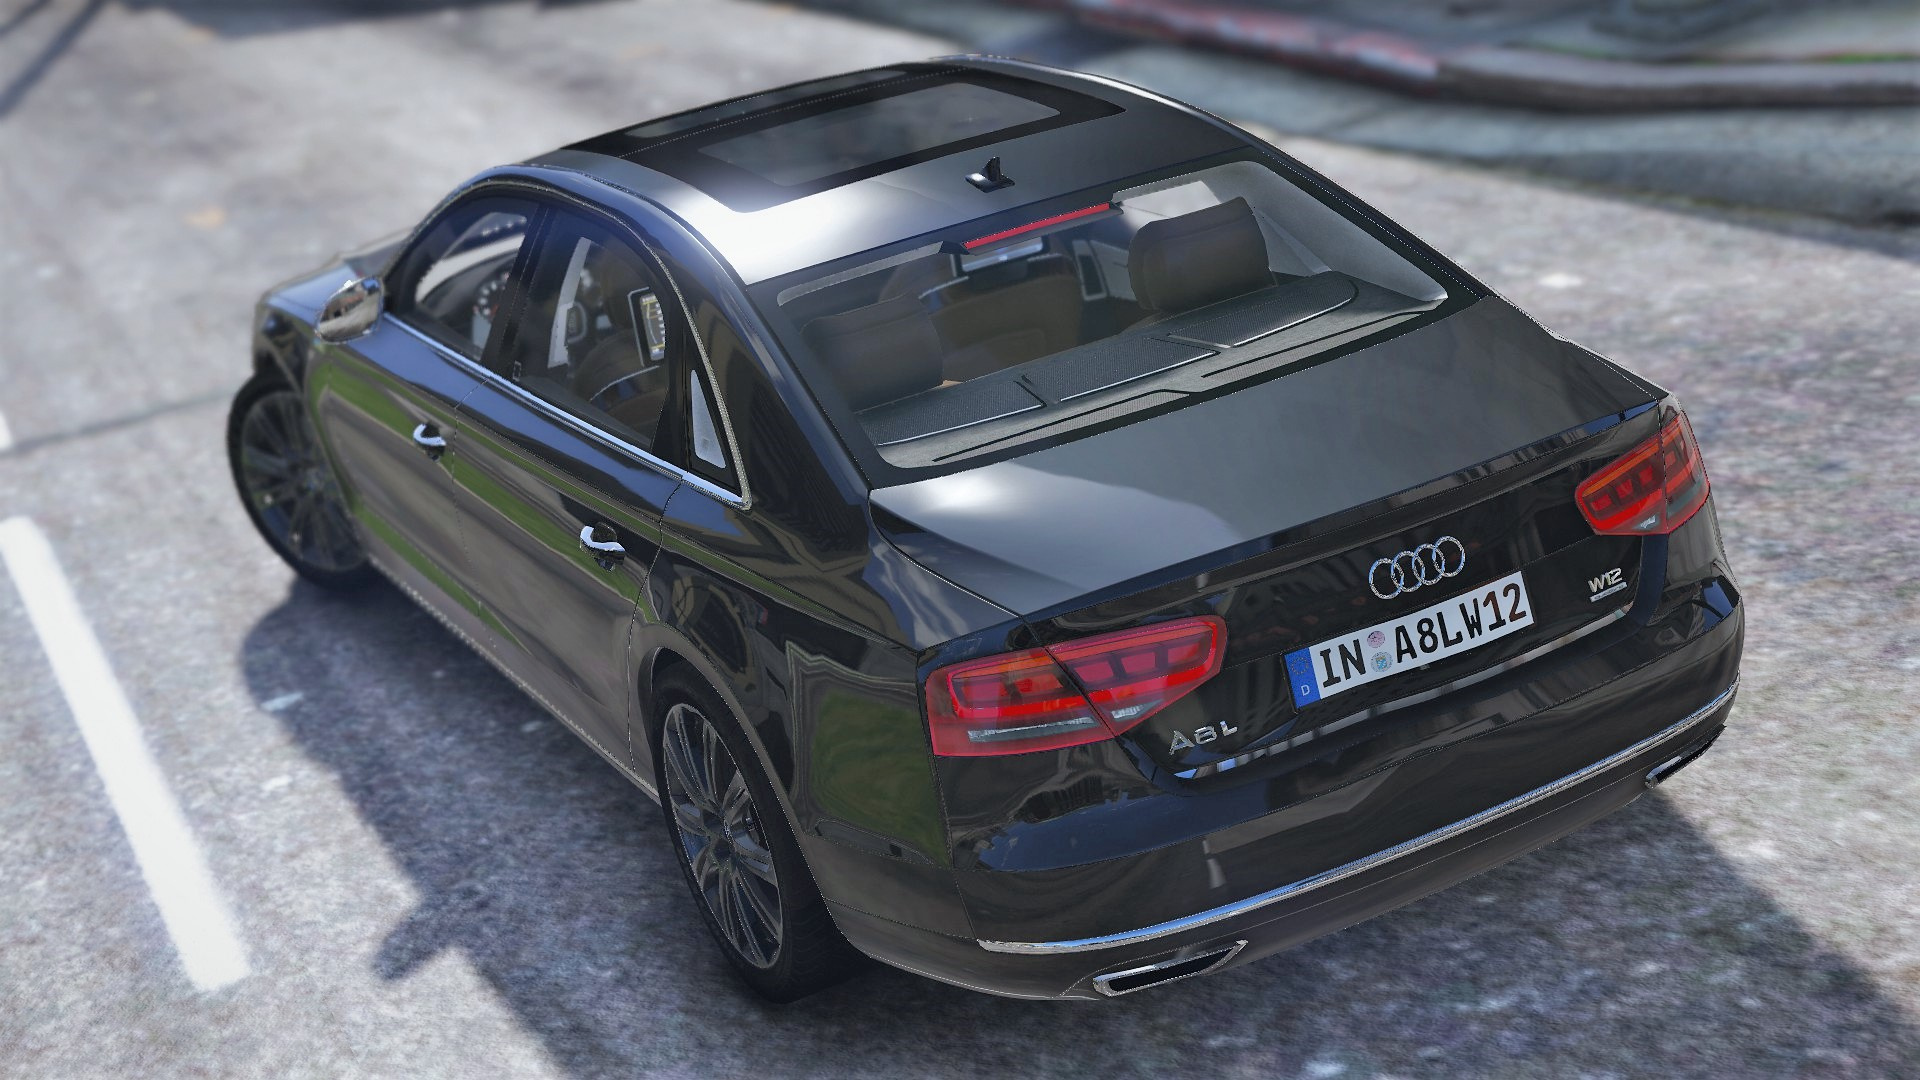 2010 audi a8 l w12 quattro d4 add on tuning gta5. Black Bedroom Furniture Sets. Home Design Ideas